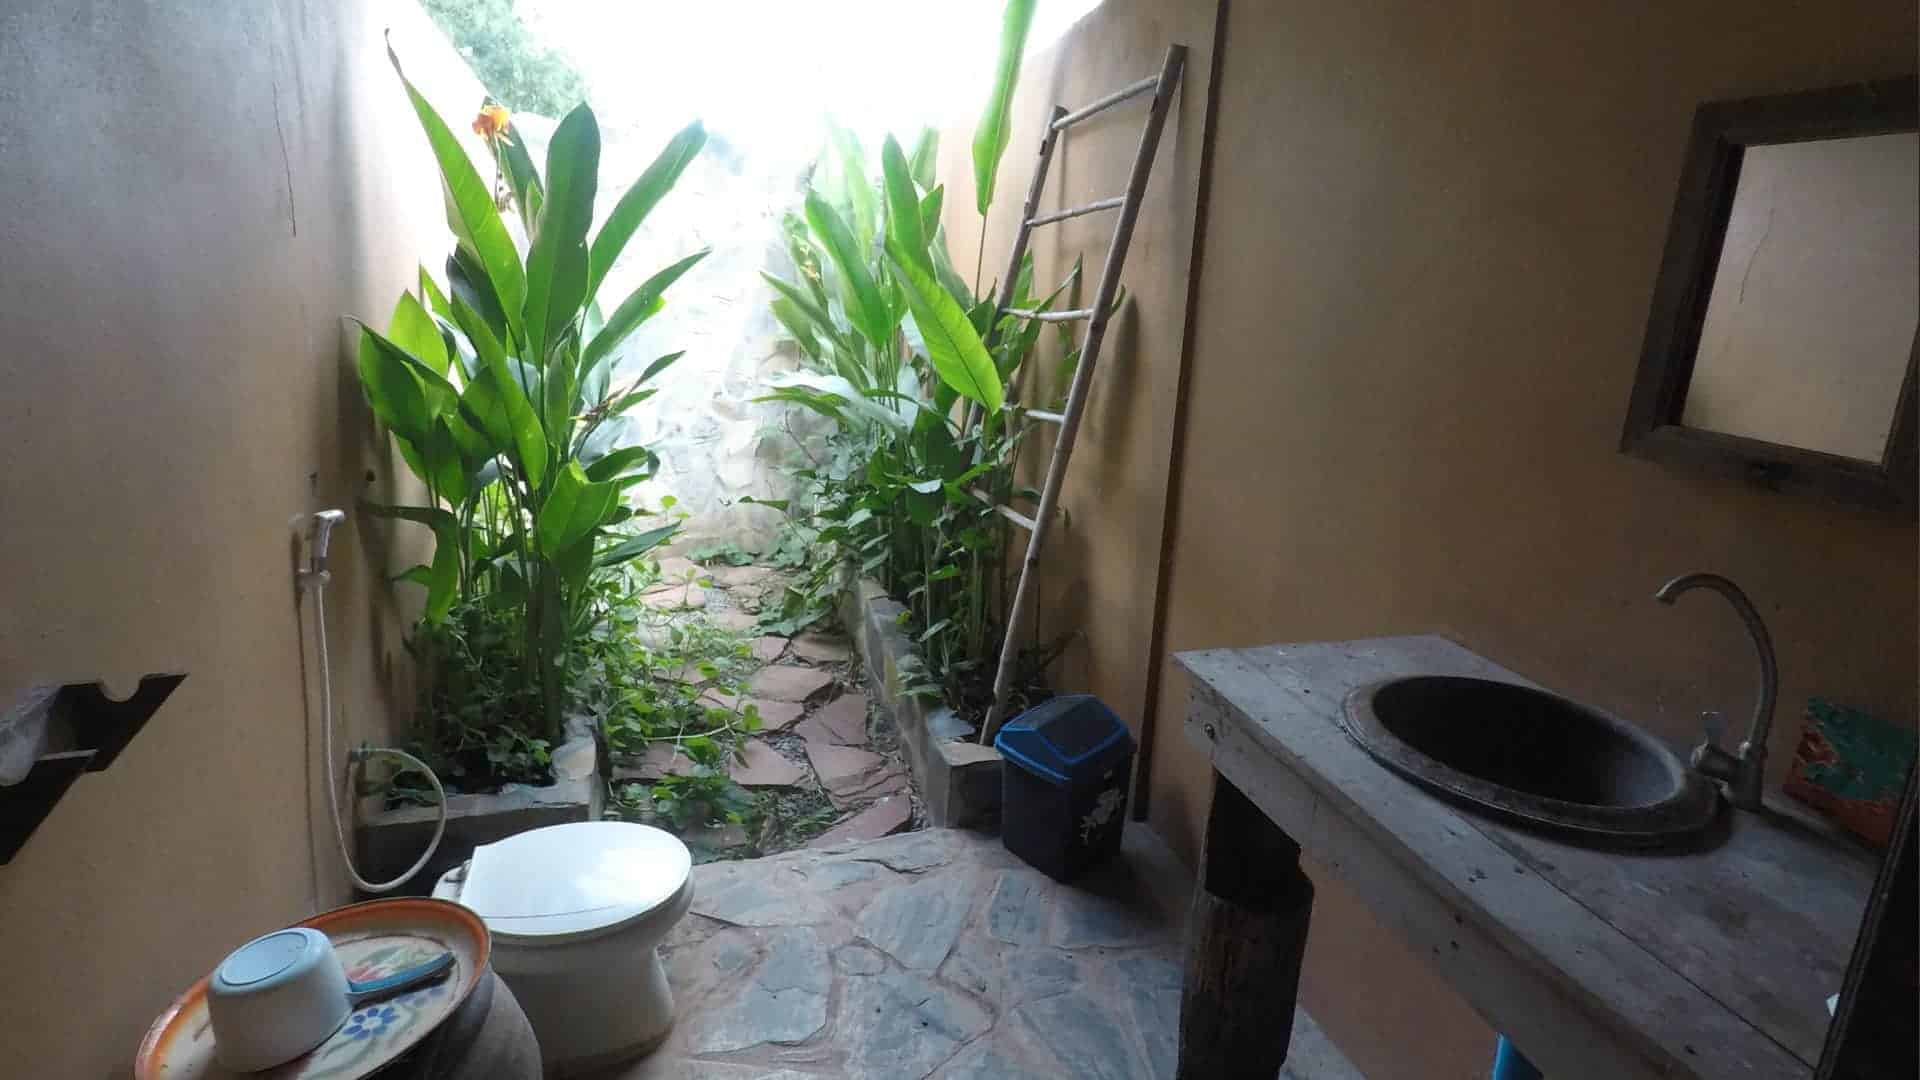 Image of the permaculture open-air tropical showers